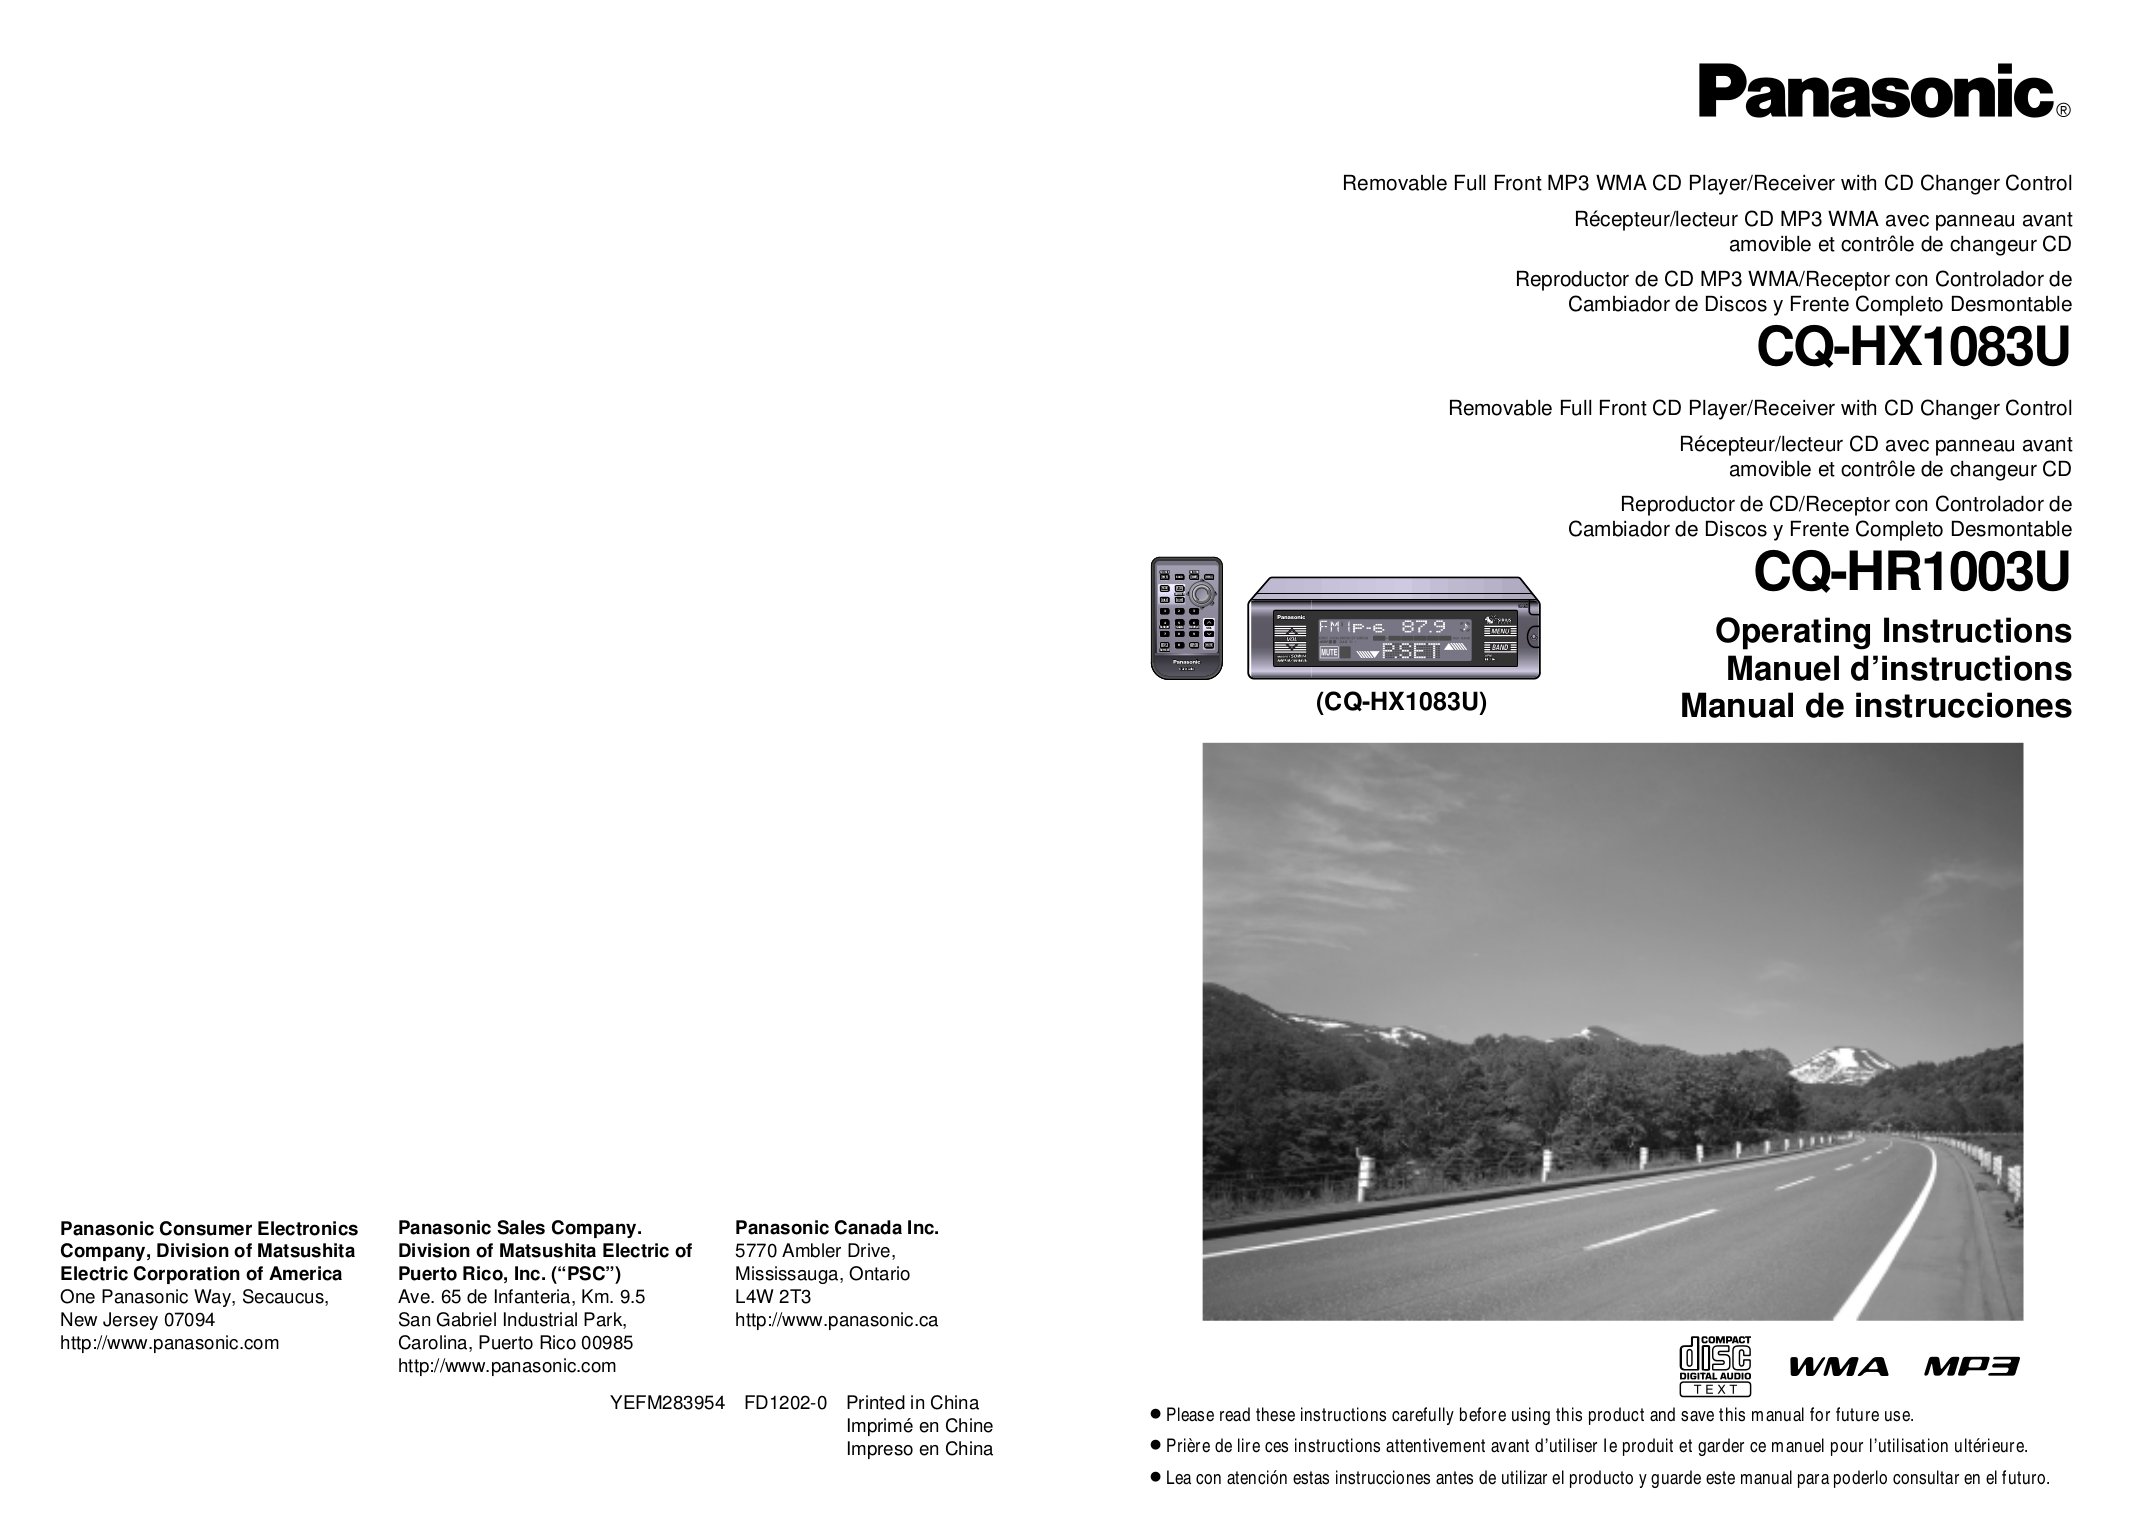 CQHX1083 OIa Eng Fr.pdf 0 download free pdf for panasonic cq hr1003u car receiver manual panasonic cq-hr1003u wiring diagram at cos-gaming.co